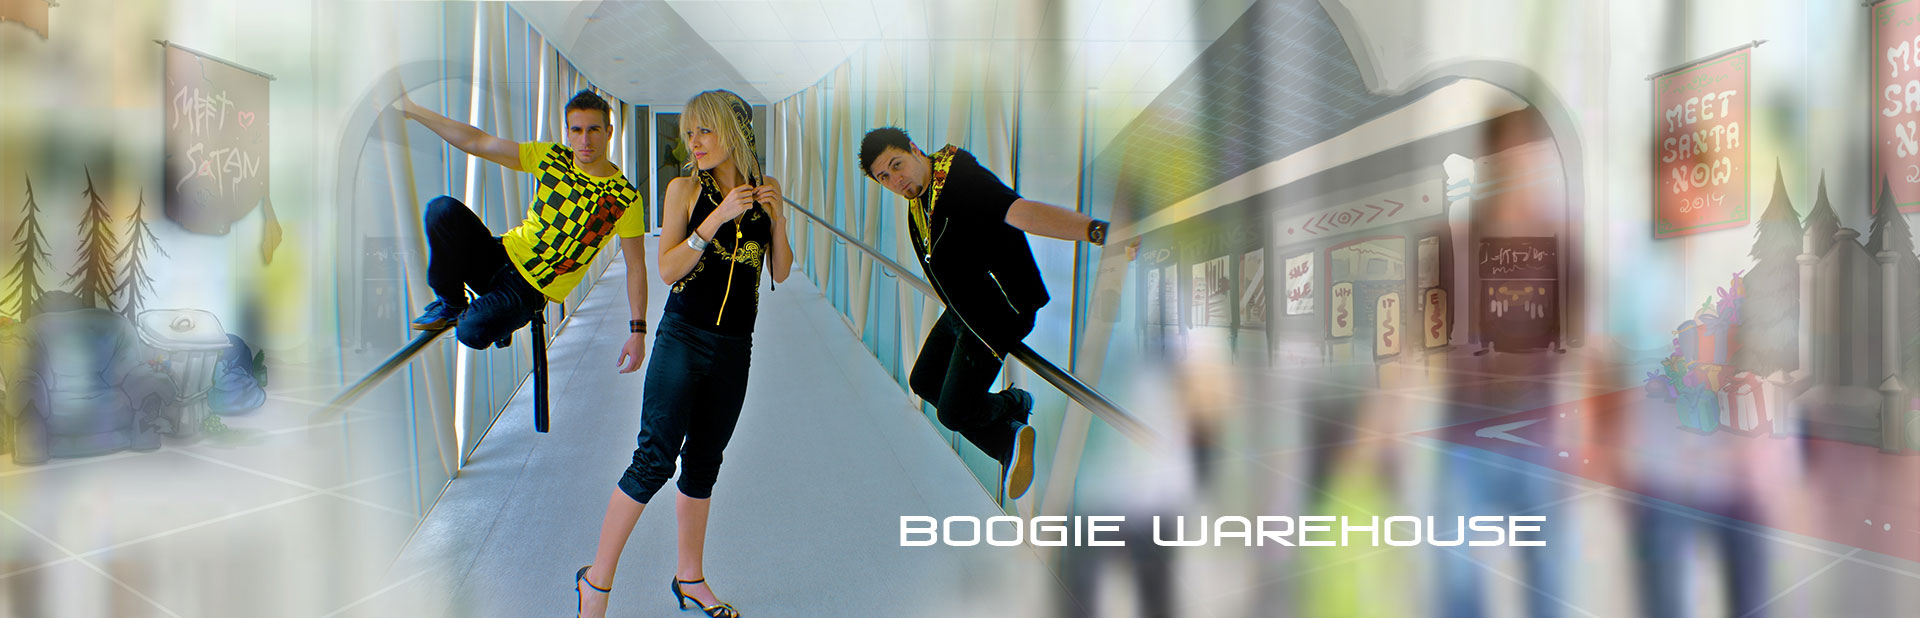 Boogie Warehouse